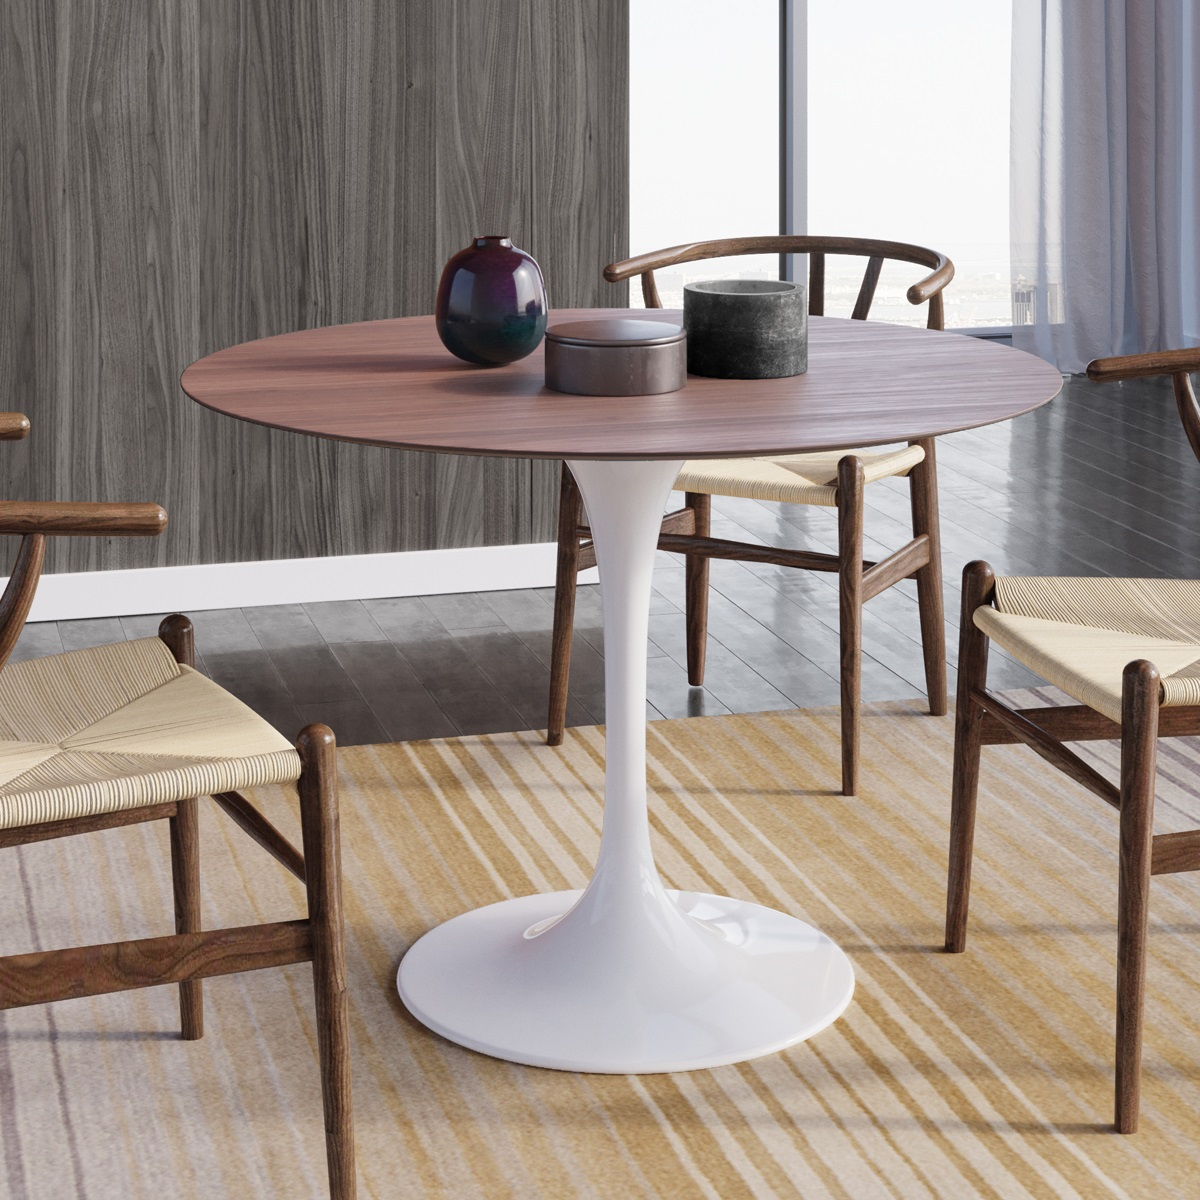 Saarinen Tulip Round Dining Table. U003e